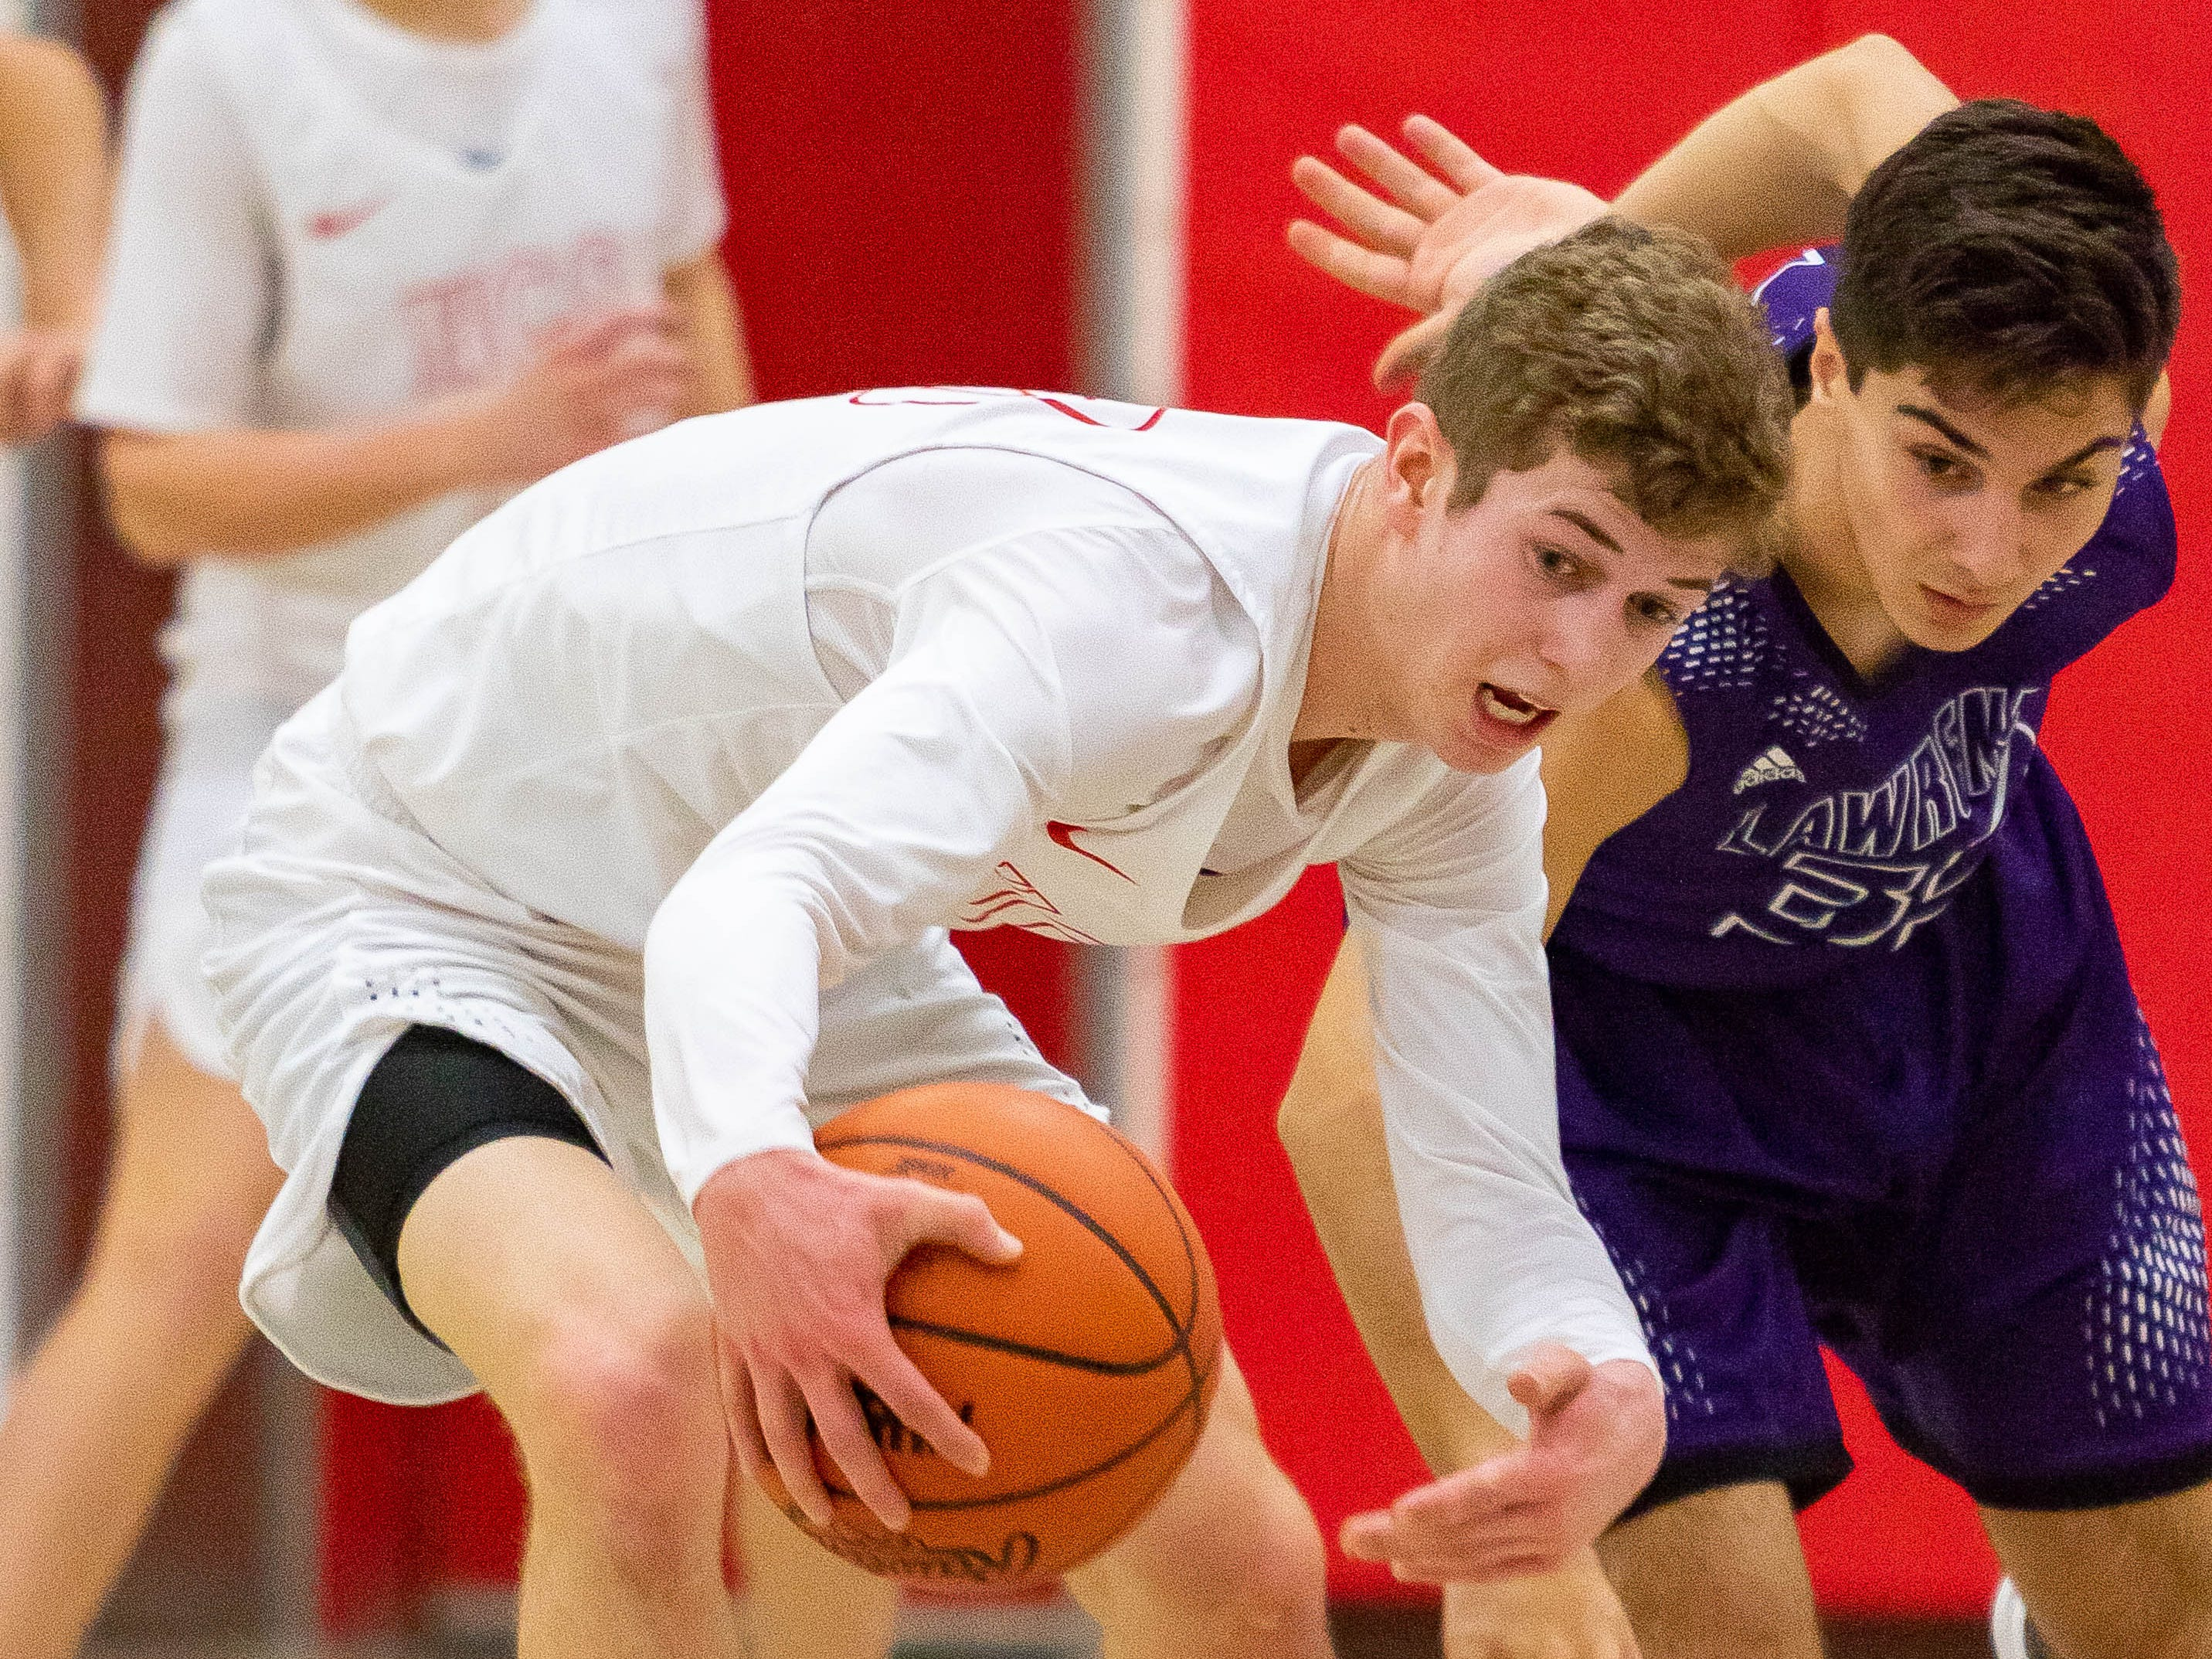 Marcellus Howardsville Christian's Dylan Jergens steals the ball during a game against Lawrence.